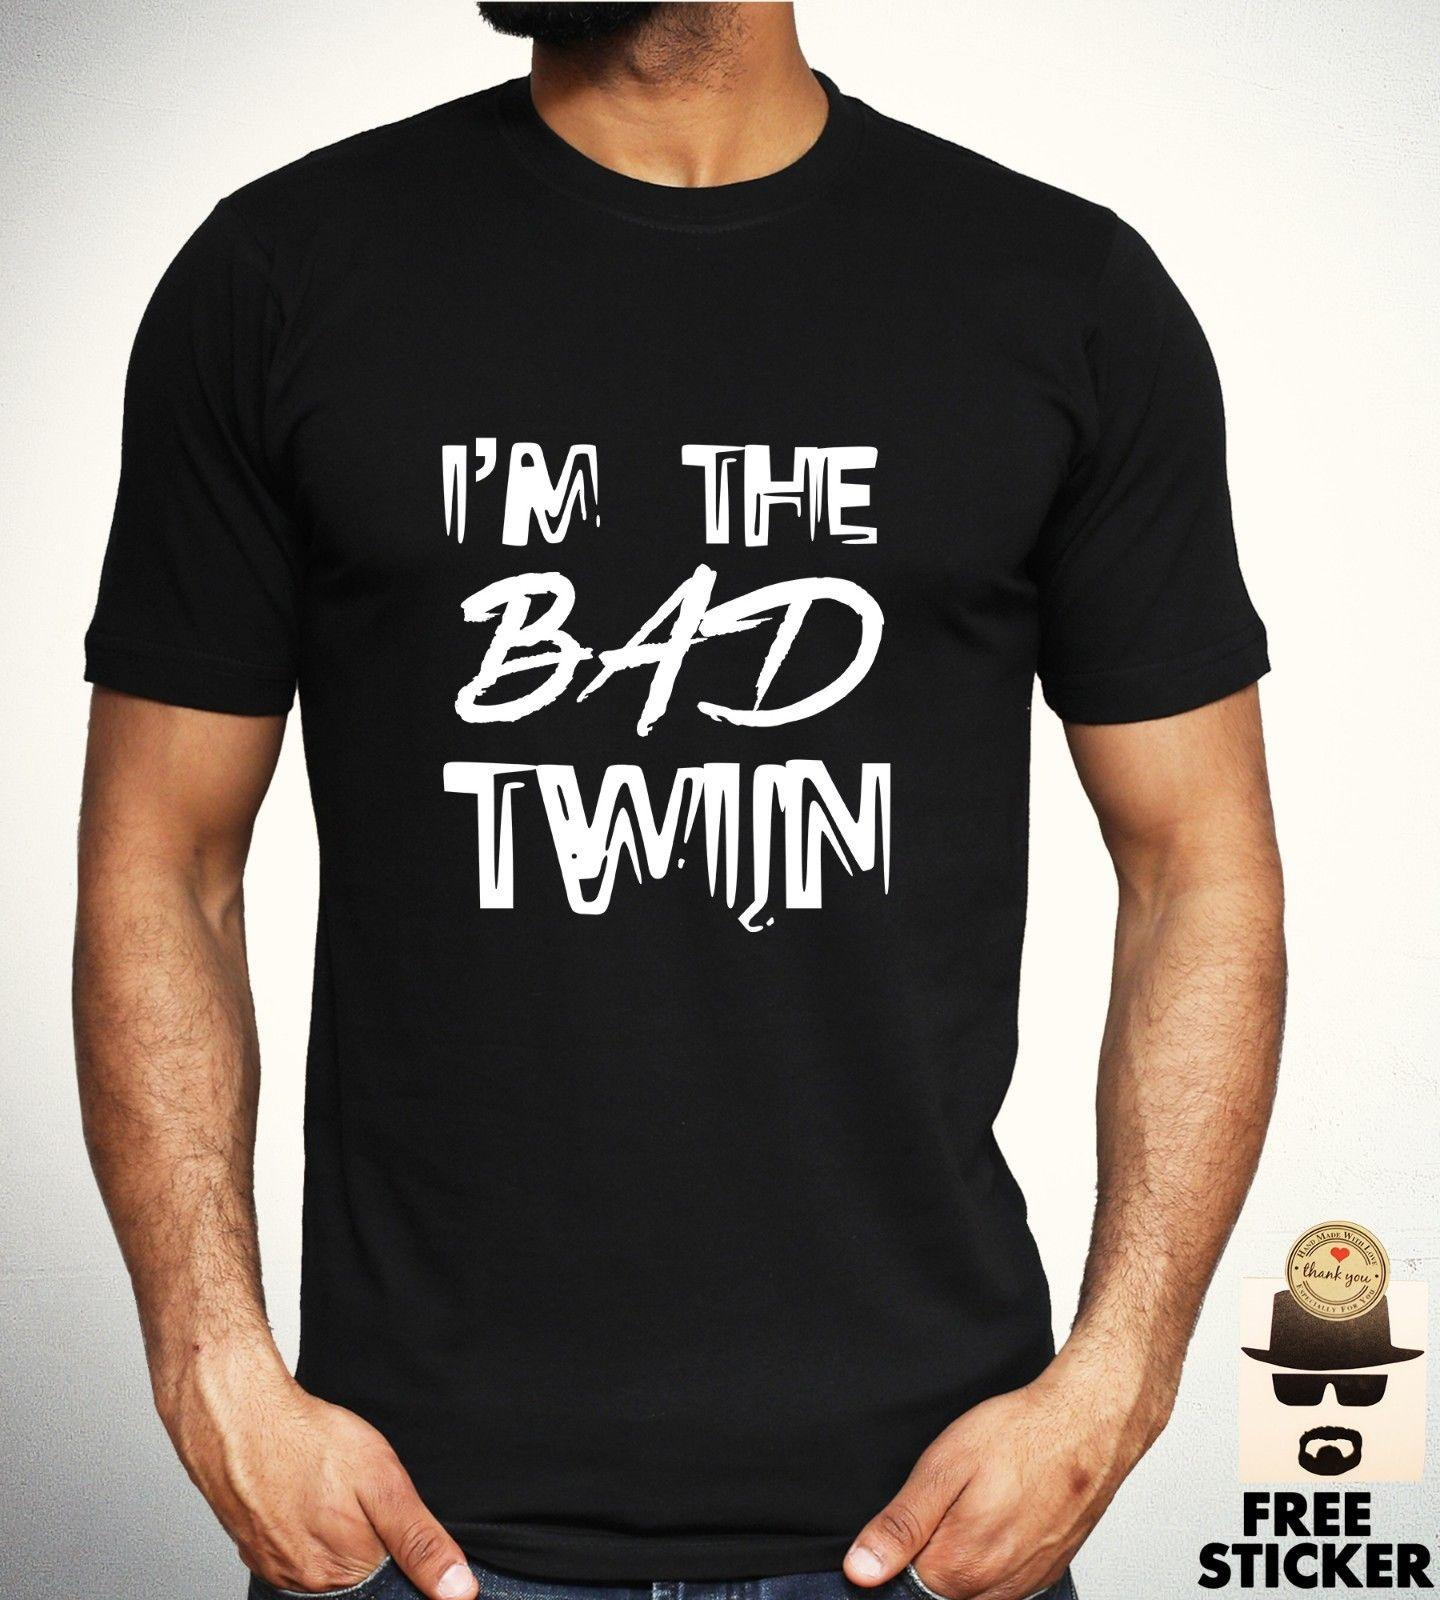 Im The Bad Twin T Shirt Funny Cool Novelty Brother Birthday Gift Present Top Men Hilarious Tee Shirts Online Buy From Oldshop77 1148